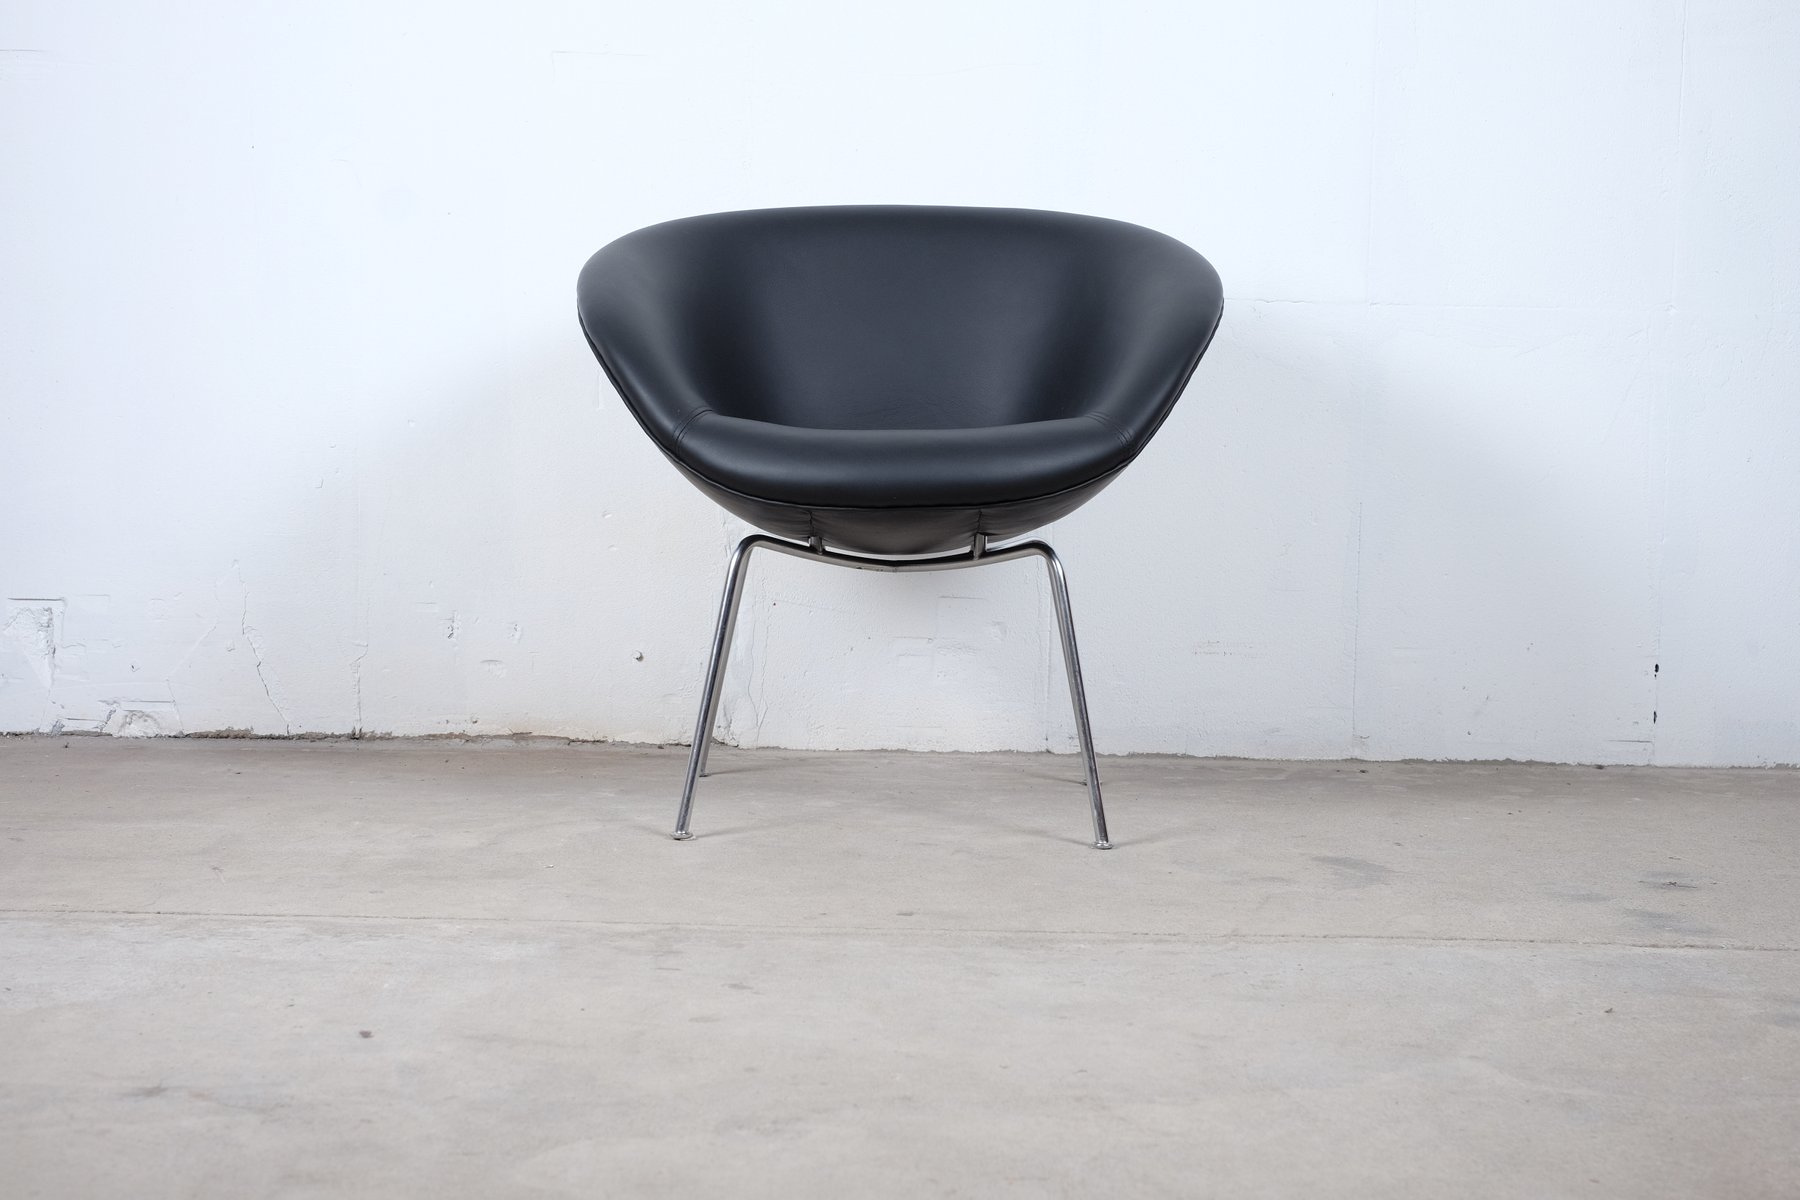 vintage danish model 3318 chair by arne jacobsen for fritz hansen for sale at pamono. Black Bedroom Furniture Sets. Home Design Ideas